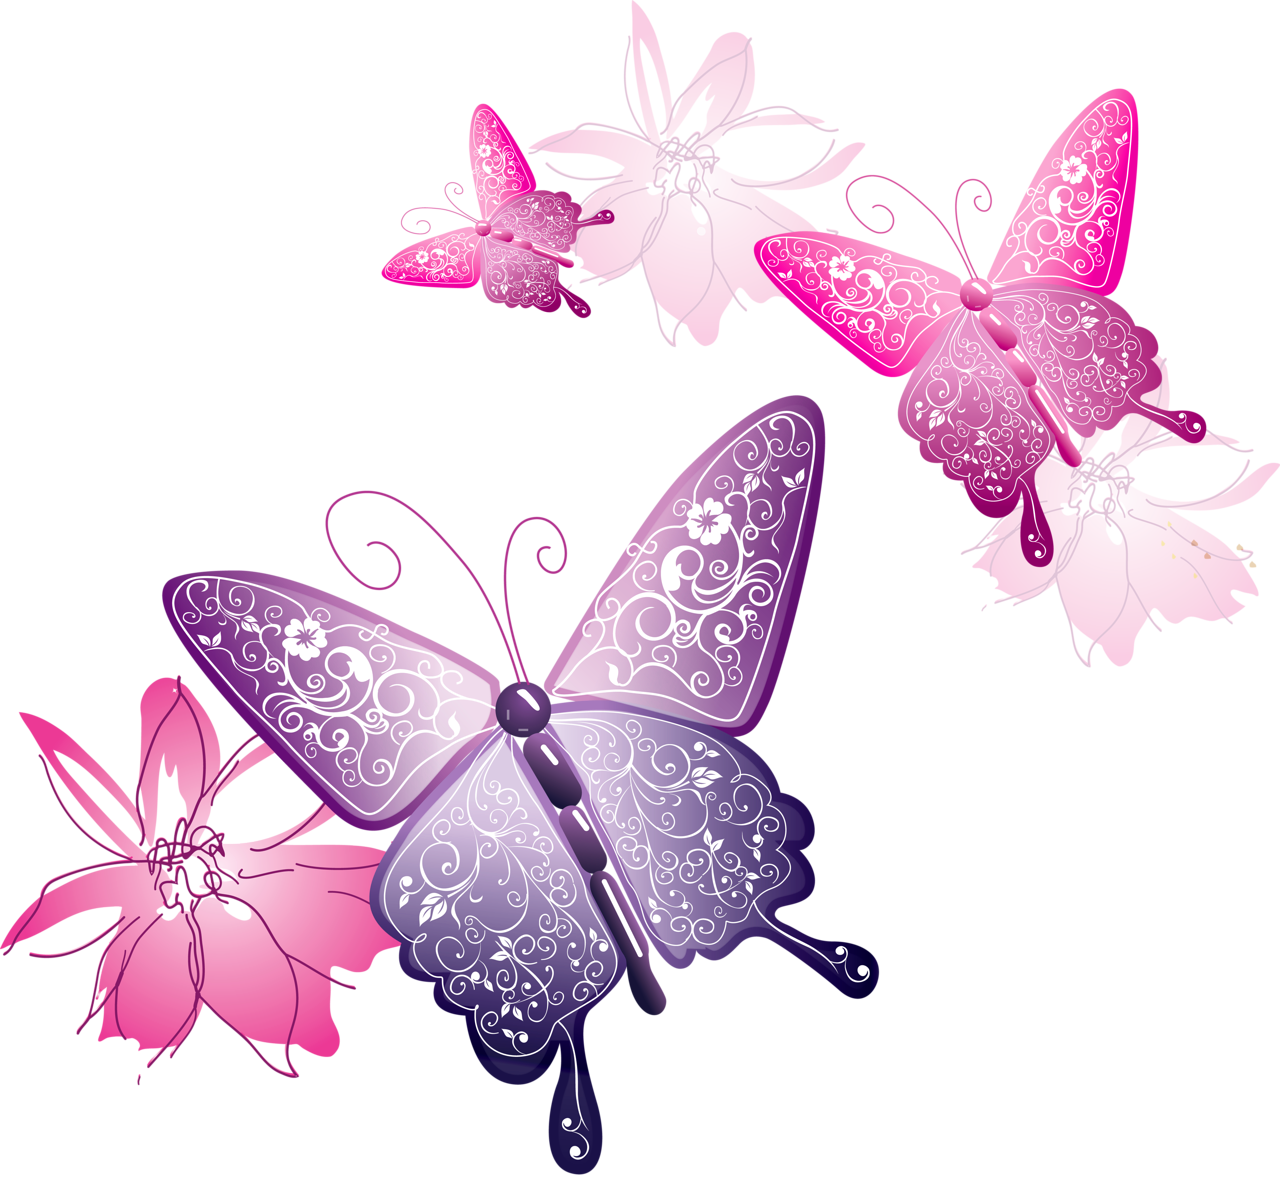 Snowflake butterfly clipart graphic freeuse library Transparent Butterfly Decorative Clipart | Gallery Yopriceville ... graphic freeuse library